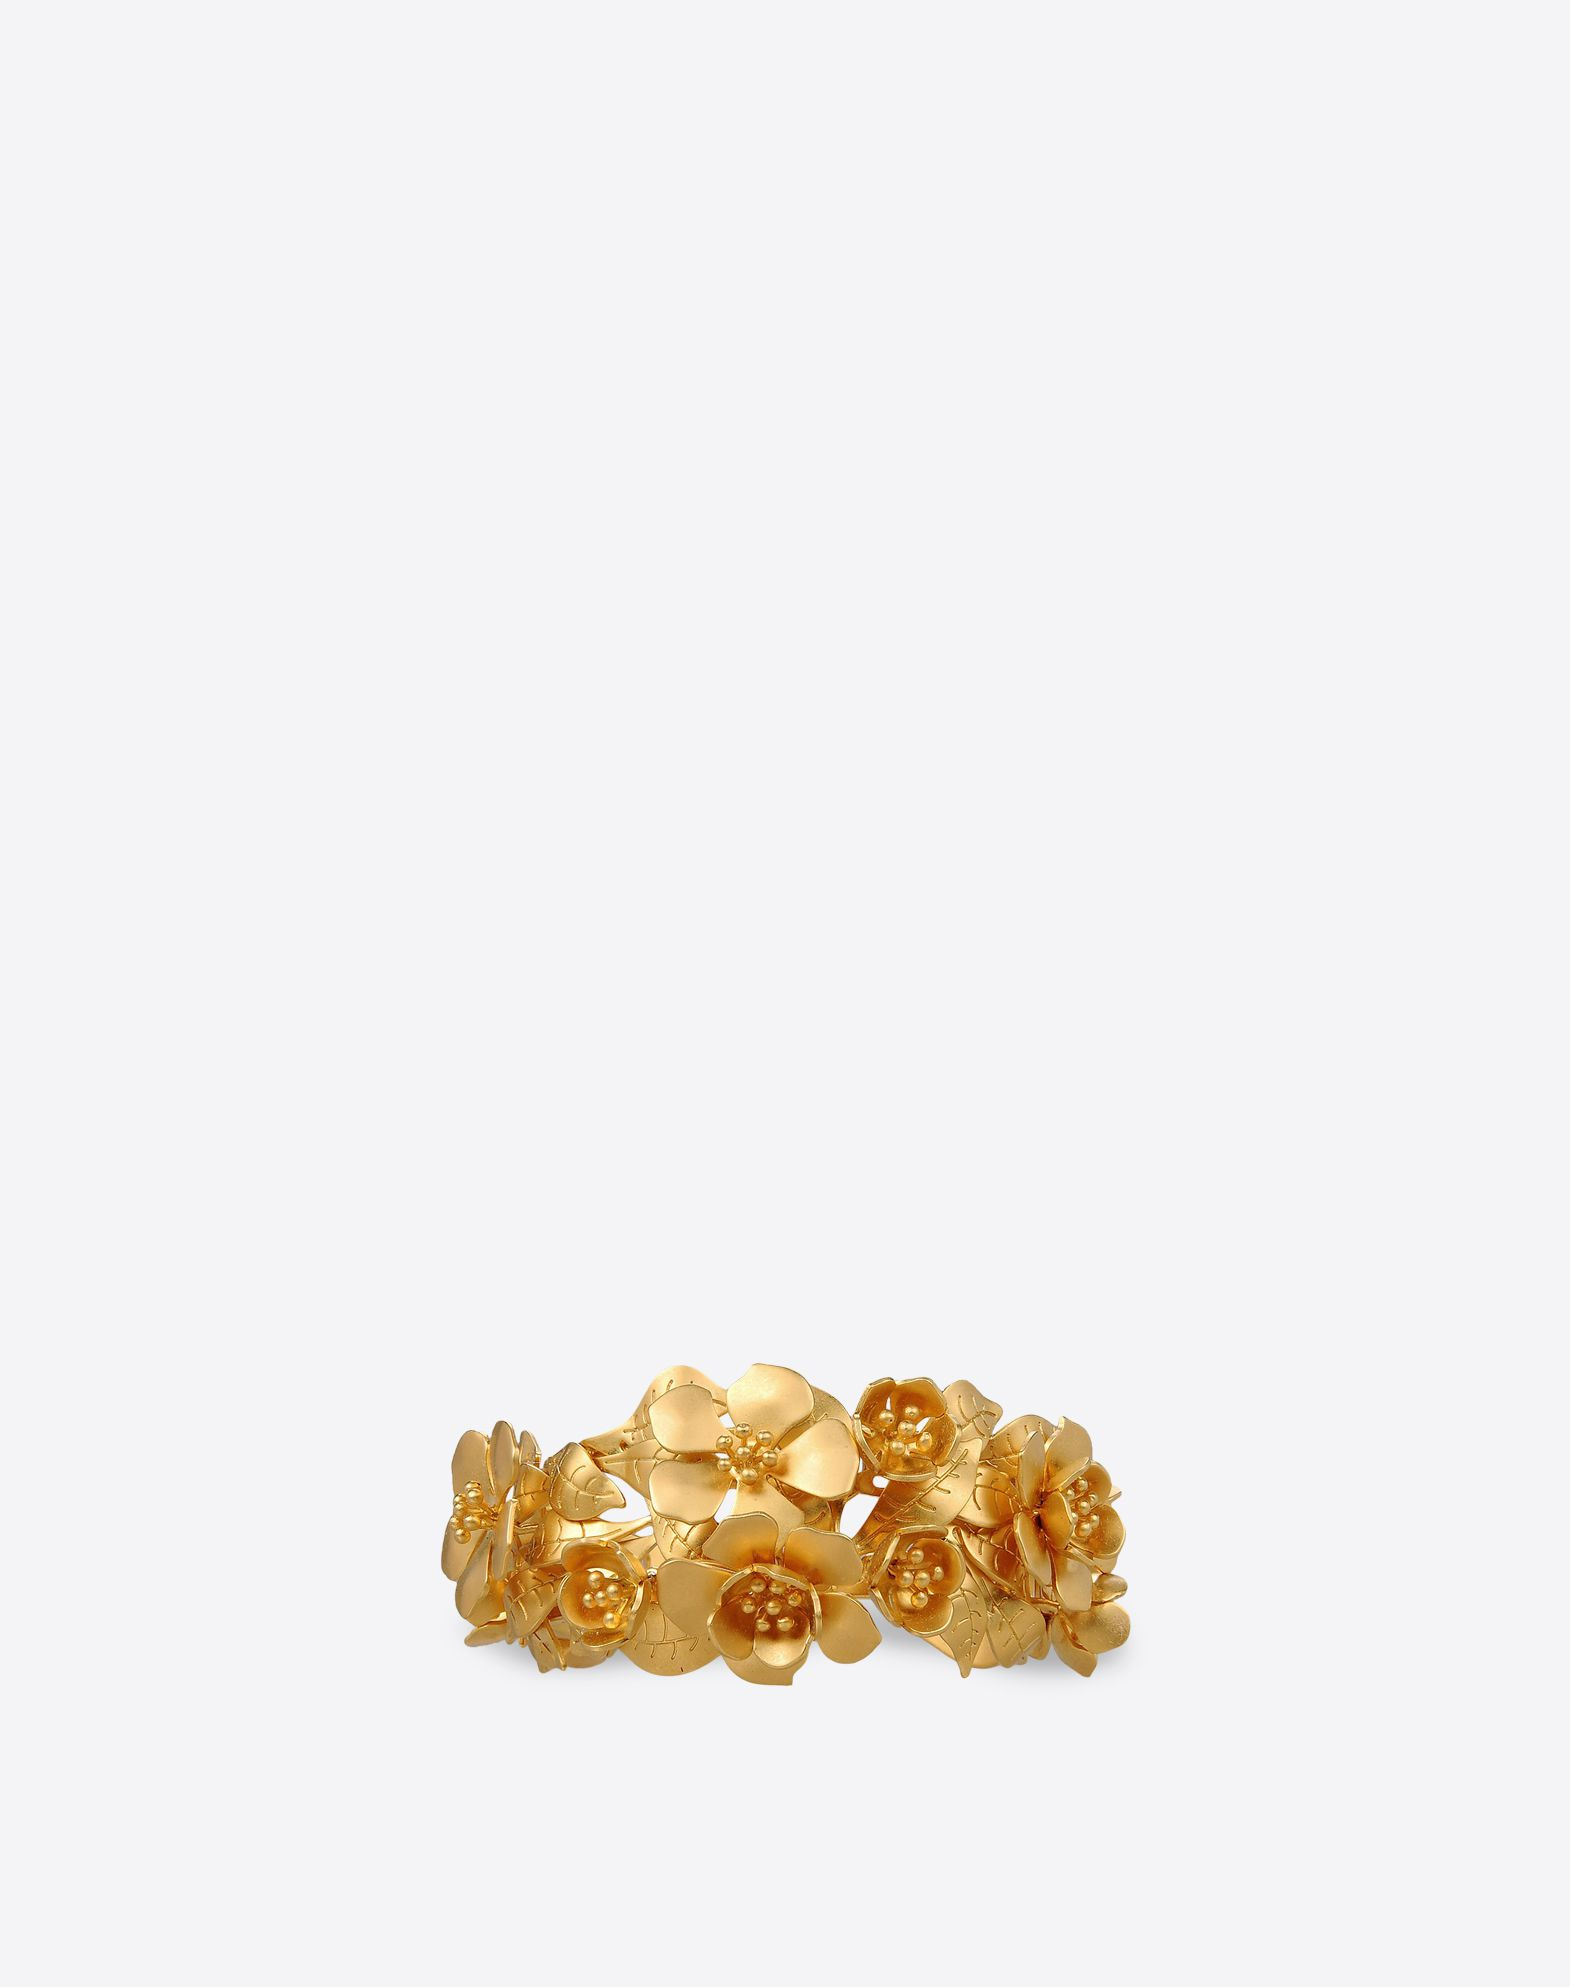 VALENTINO Valentino Garavani brass cuff  - Mat gold-finish brass  - Brass flowers entirely made and assembled by hand  - Made in Italy 46427275gq